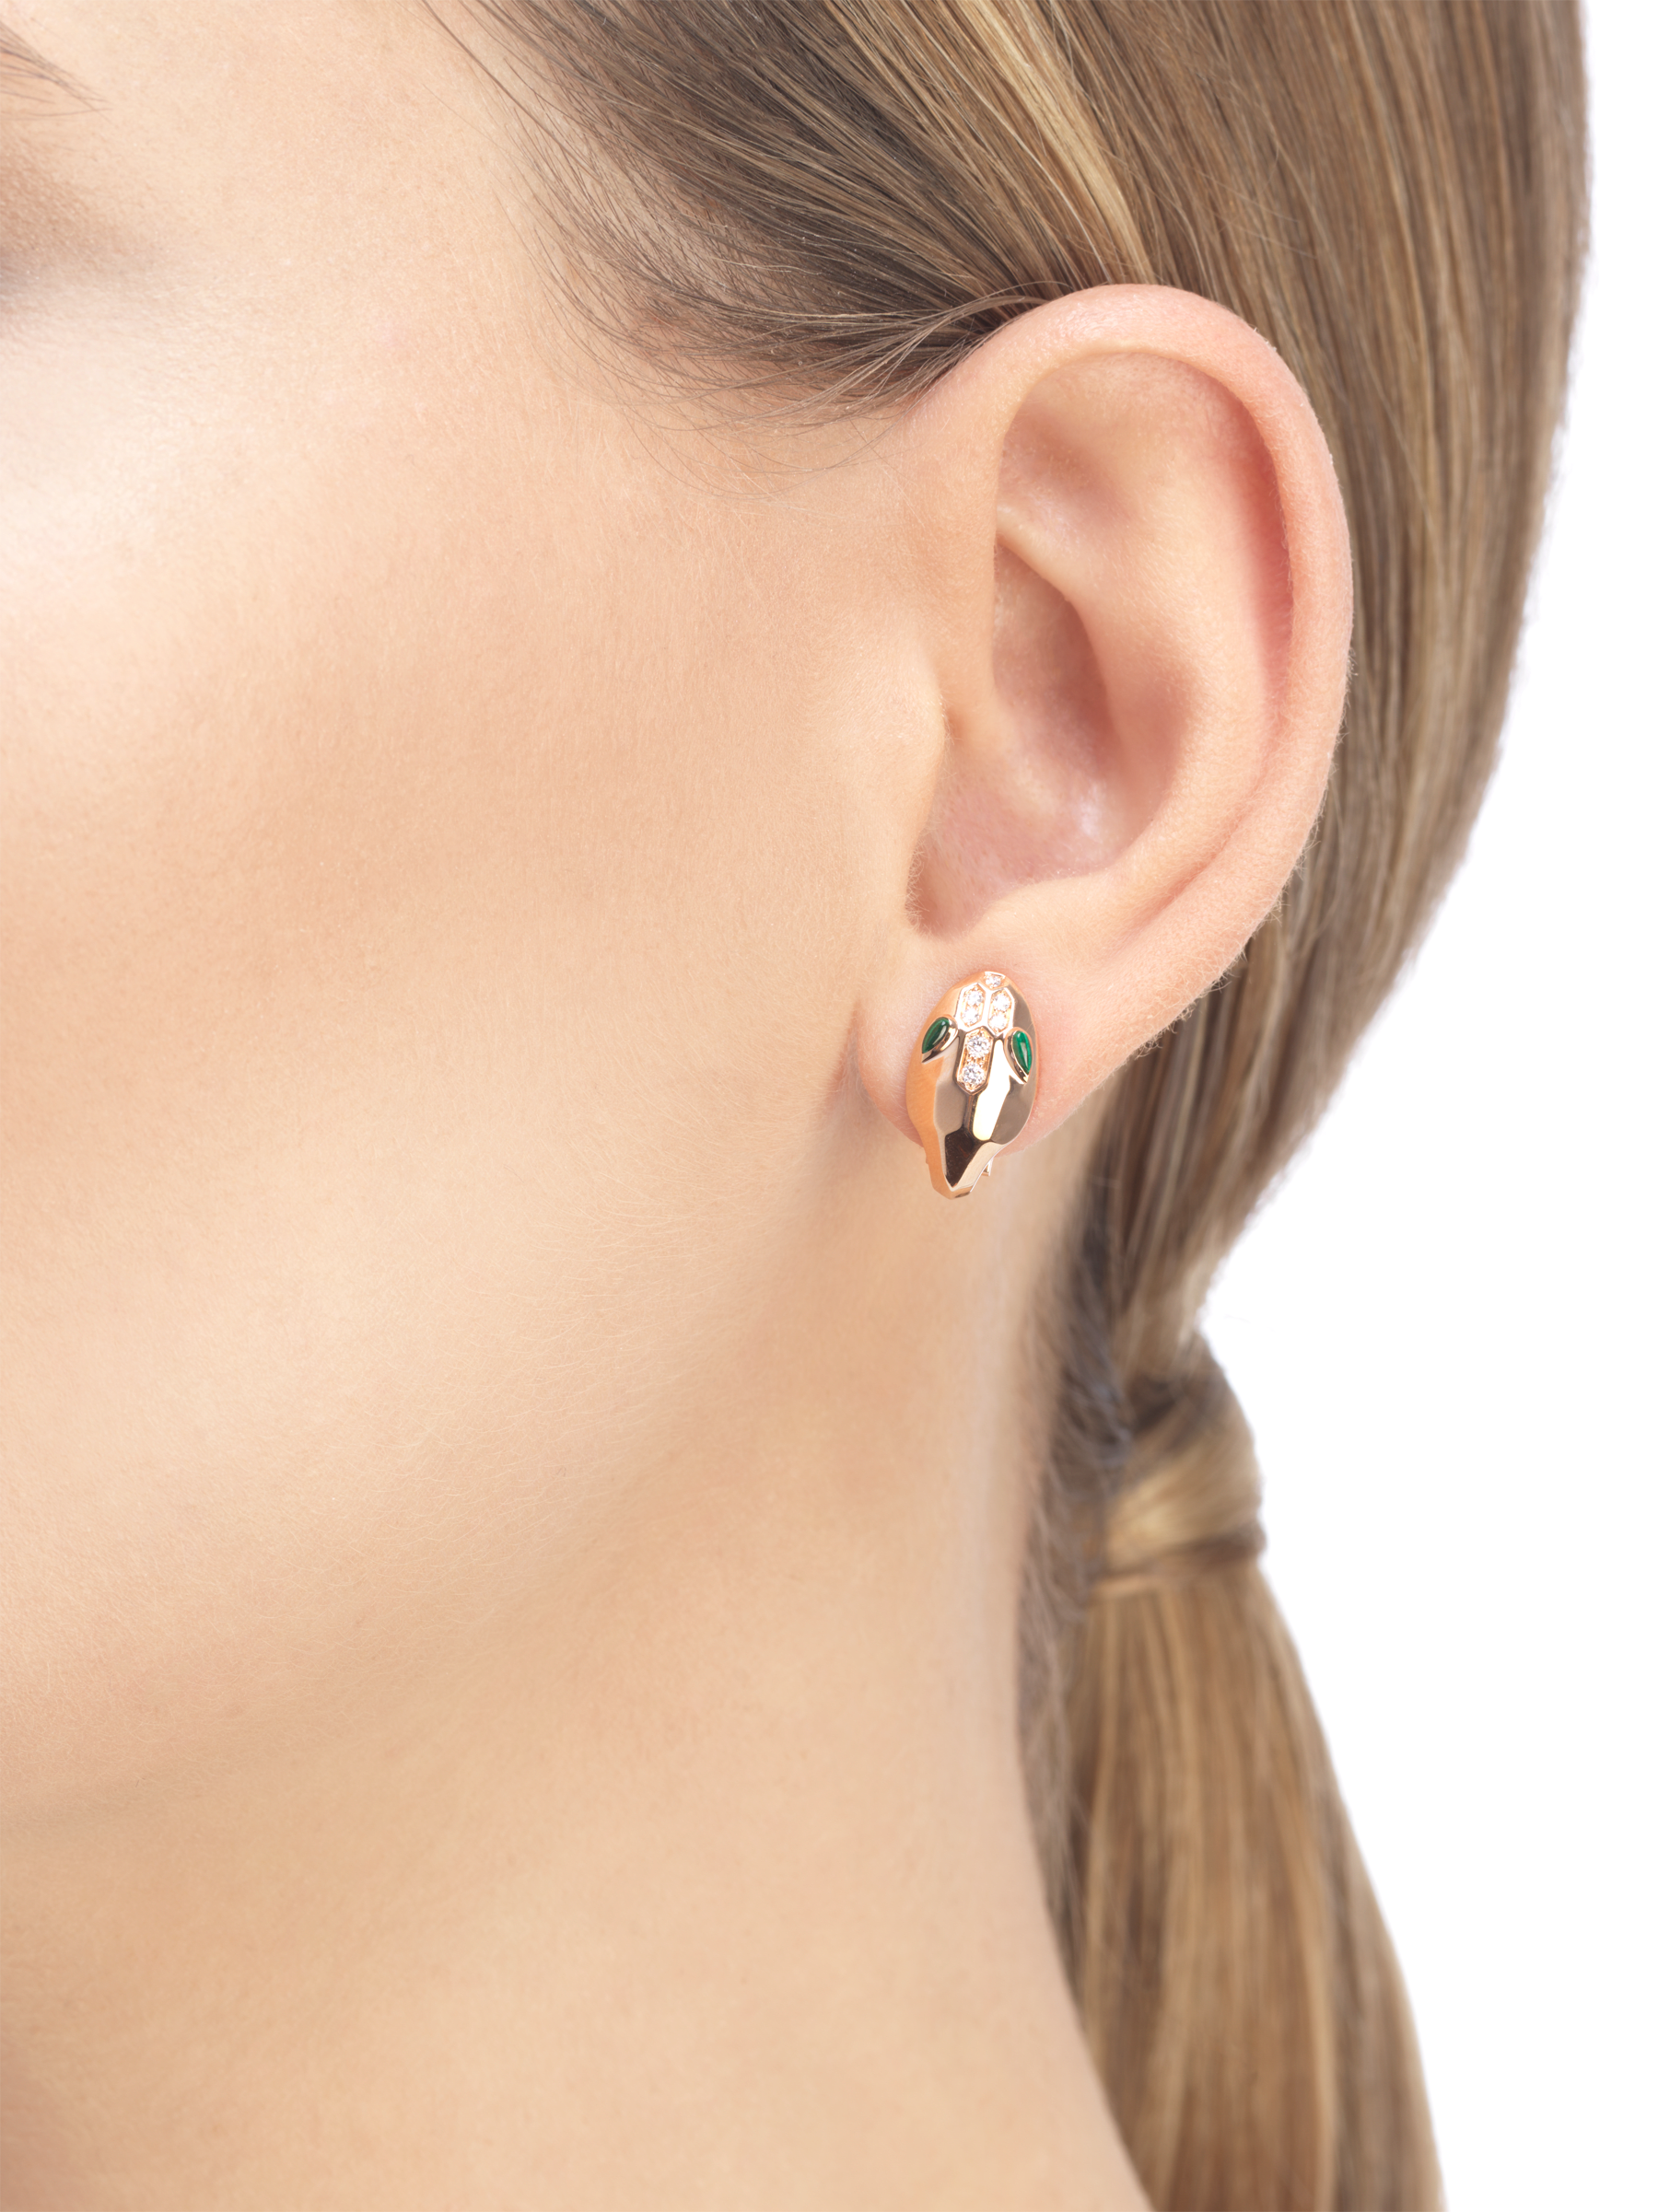 Serpenti earrings in 18 kt rose gold, set with malachite eyes and demi pavé diamonds. 352701 image 3